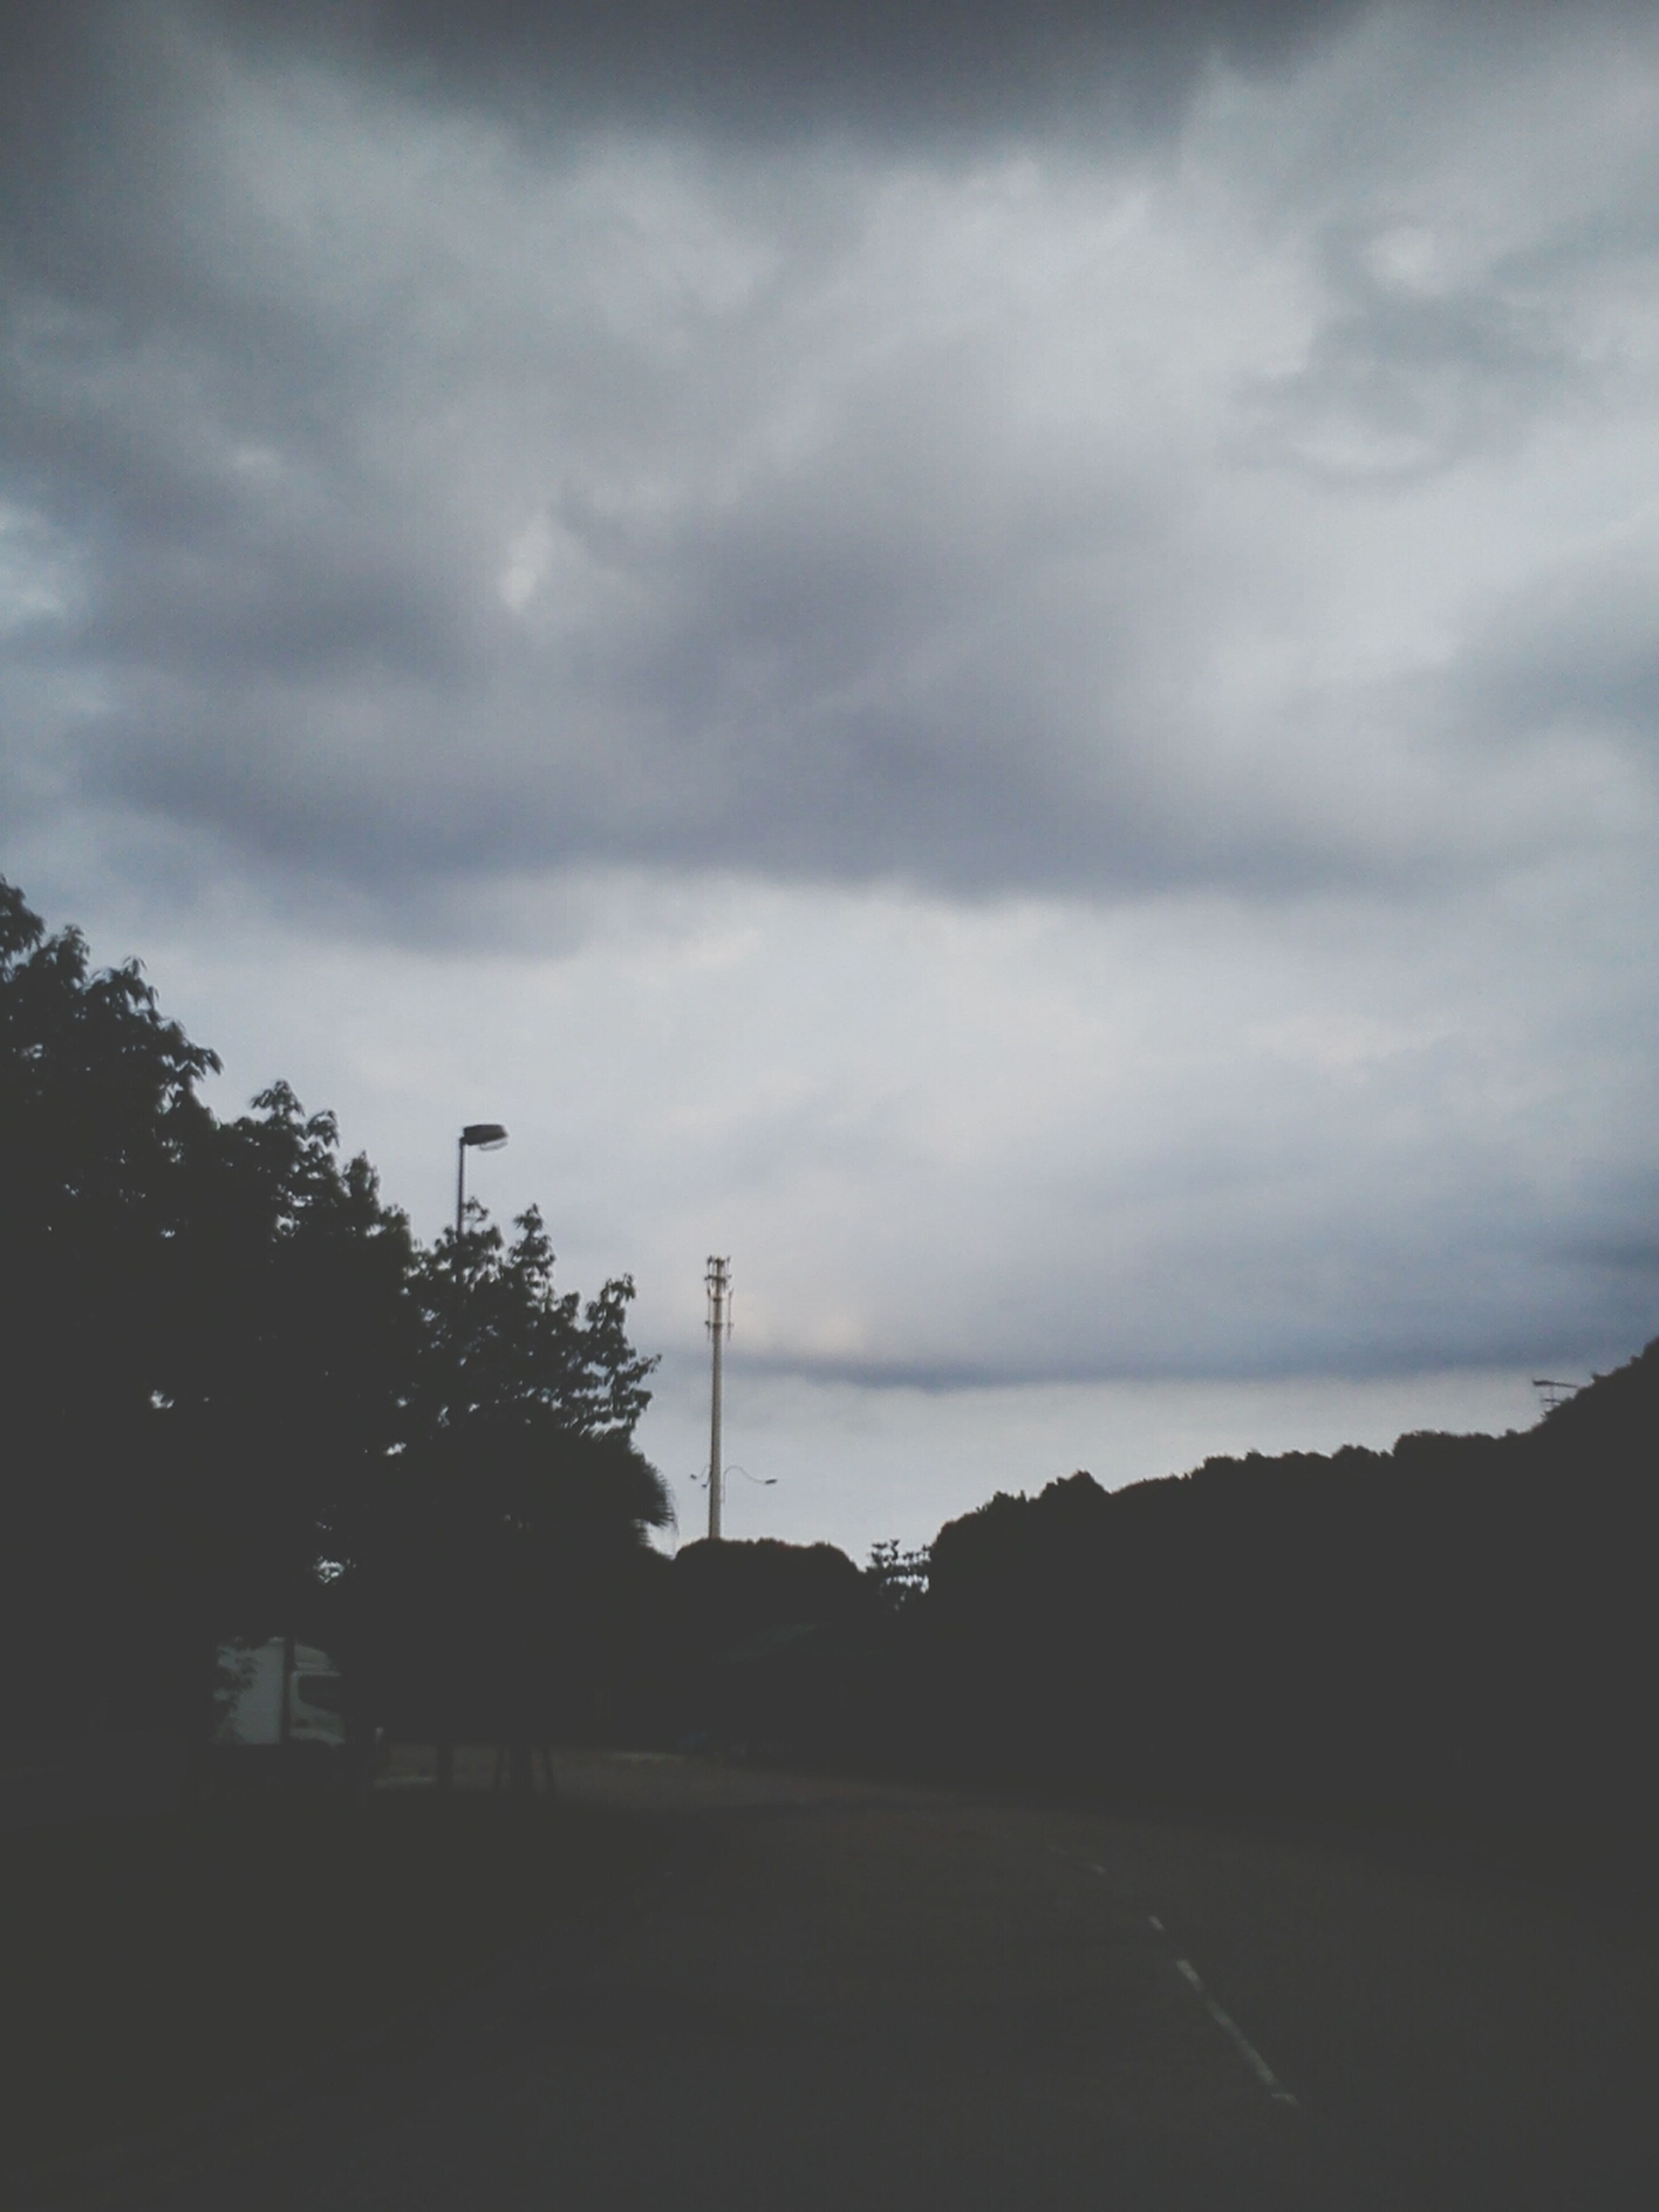 sky, cloud - sky, cloudy, overcast, silhouette, road, weather, cloud, tranquility, dusk, tree, storm cloud, tranquil scene, nature, the way forward, landscape, street, scenics, outdoors, beauty in nature